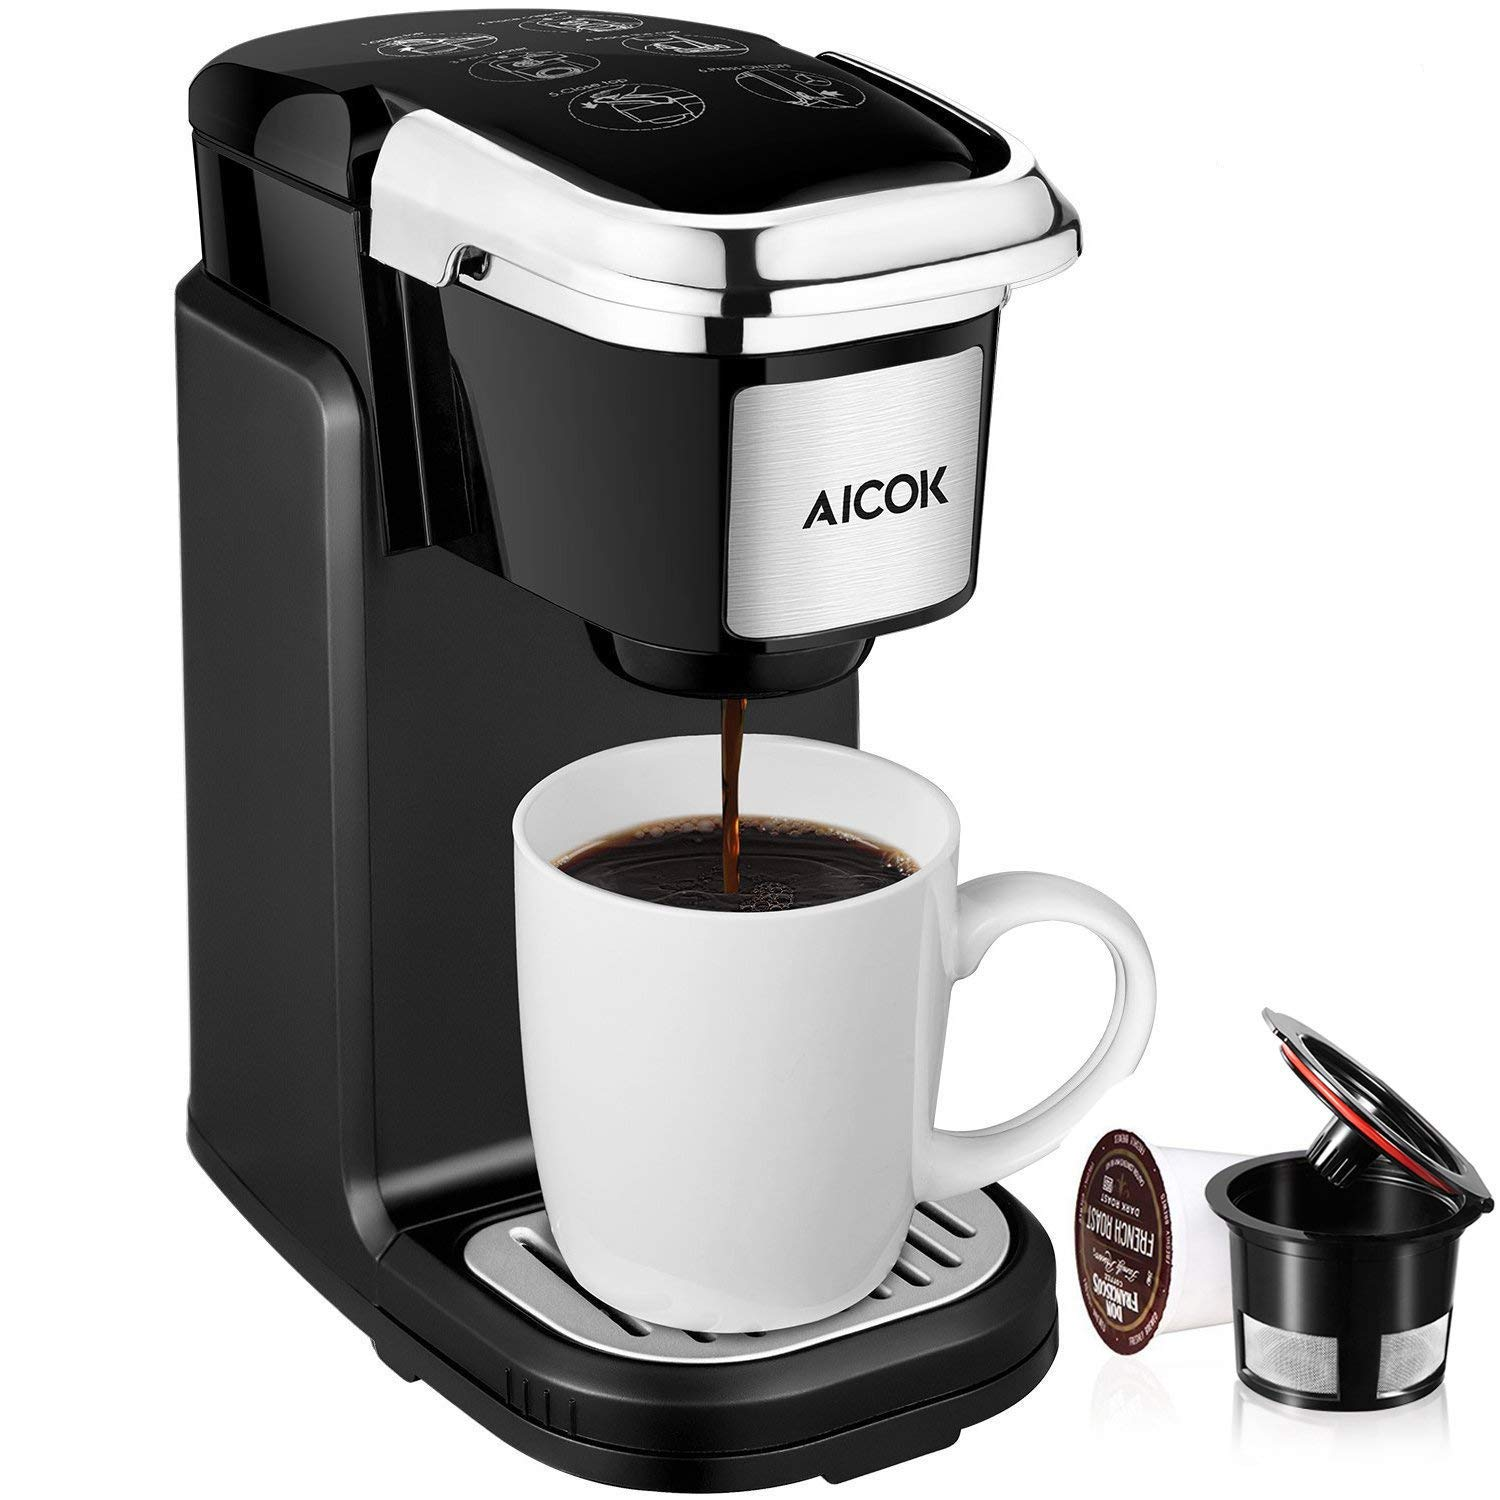 Aicok Single Serve Coffee Maker with Removable Cover Quiet and Quick Brew Technology for Most Single Cup Pods Including K-Cup pods, 800W, Black